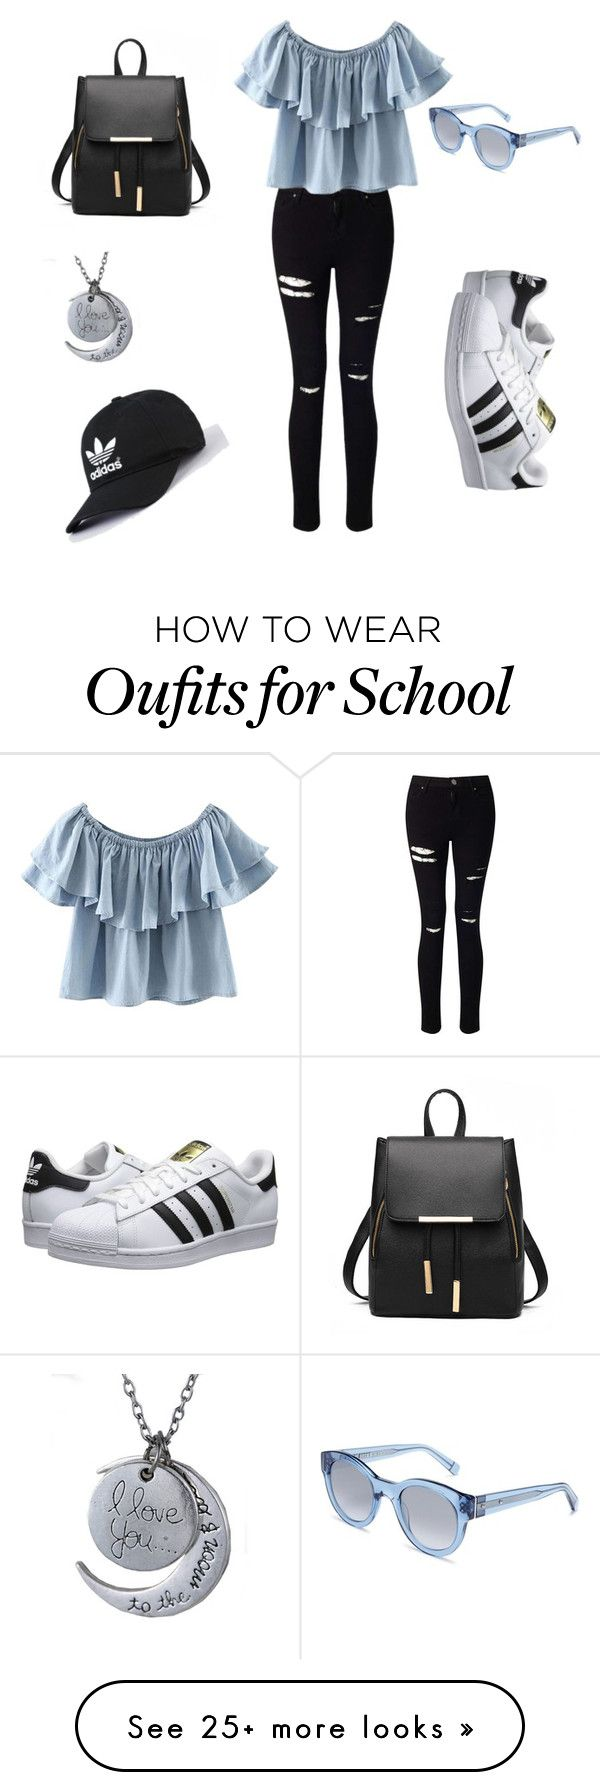 """""""School Outfit ❤️"""" by maonenaisse on Polyvore featuring Miss Selfridge, Chicnova Fashion, adidas Originals and Bobbi Brown Cosmetics"""